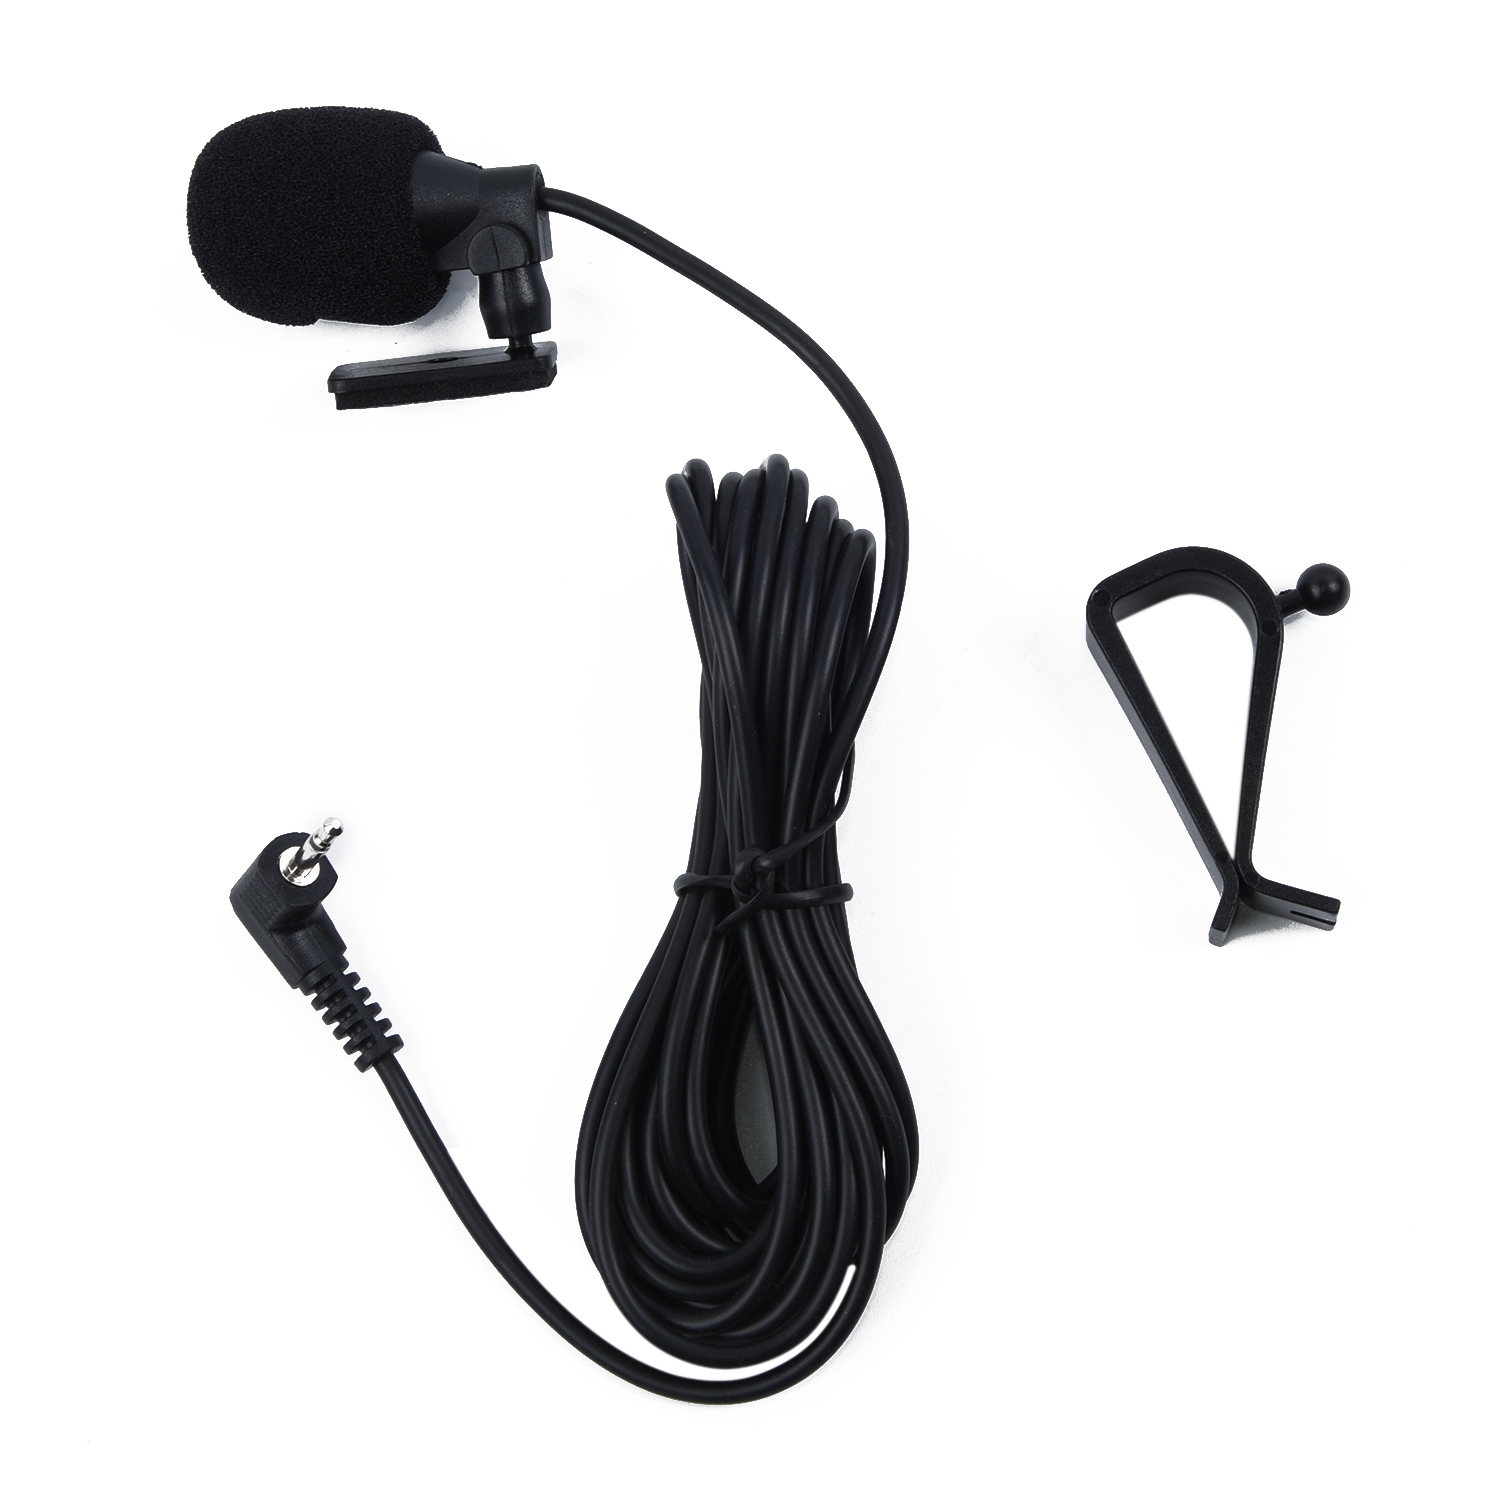 For Pioneer CD-VM1 4.5V Bluetooth External Microphone 3m For Car Pioneer Stereo Radio Receiver 2.5mm Connector Plug Micro phone